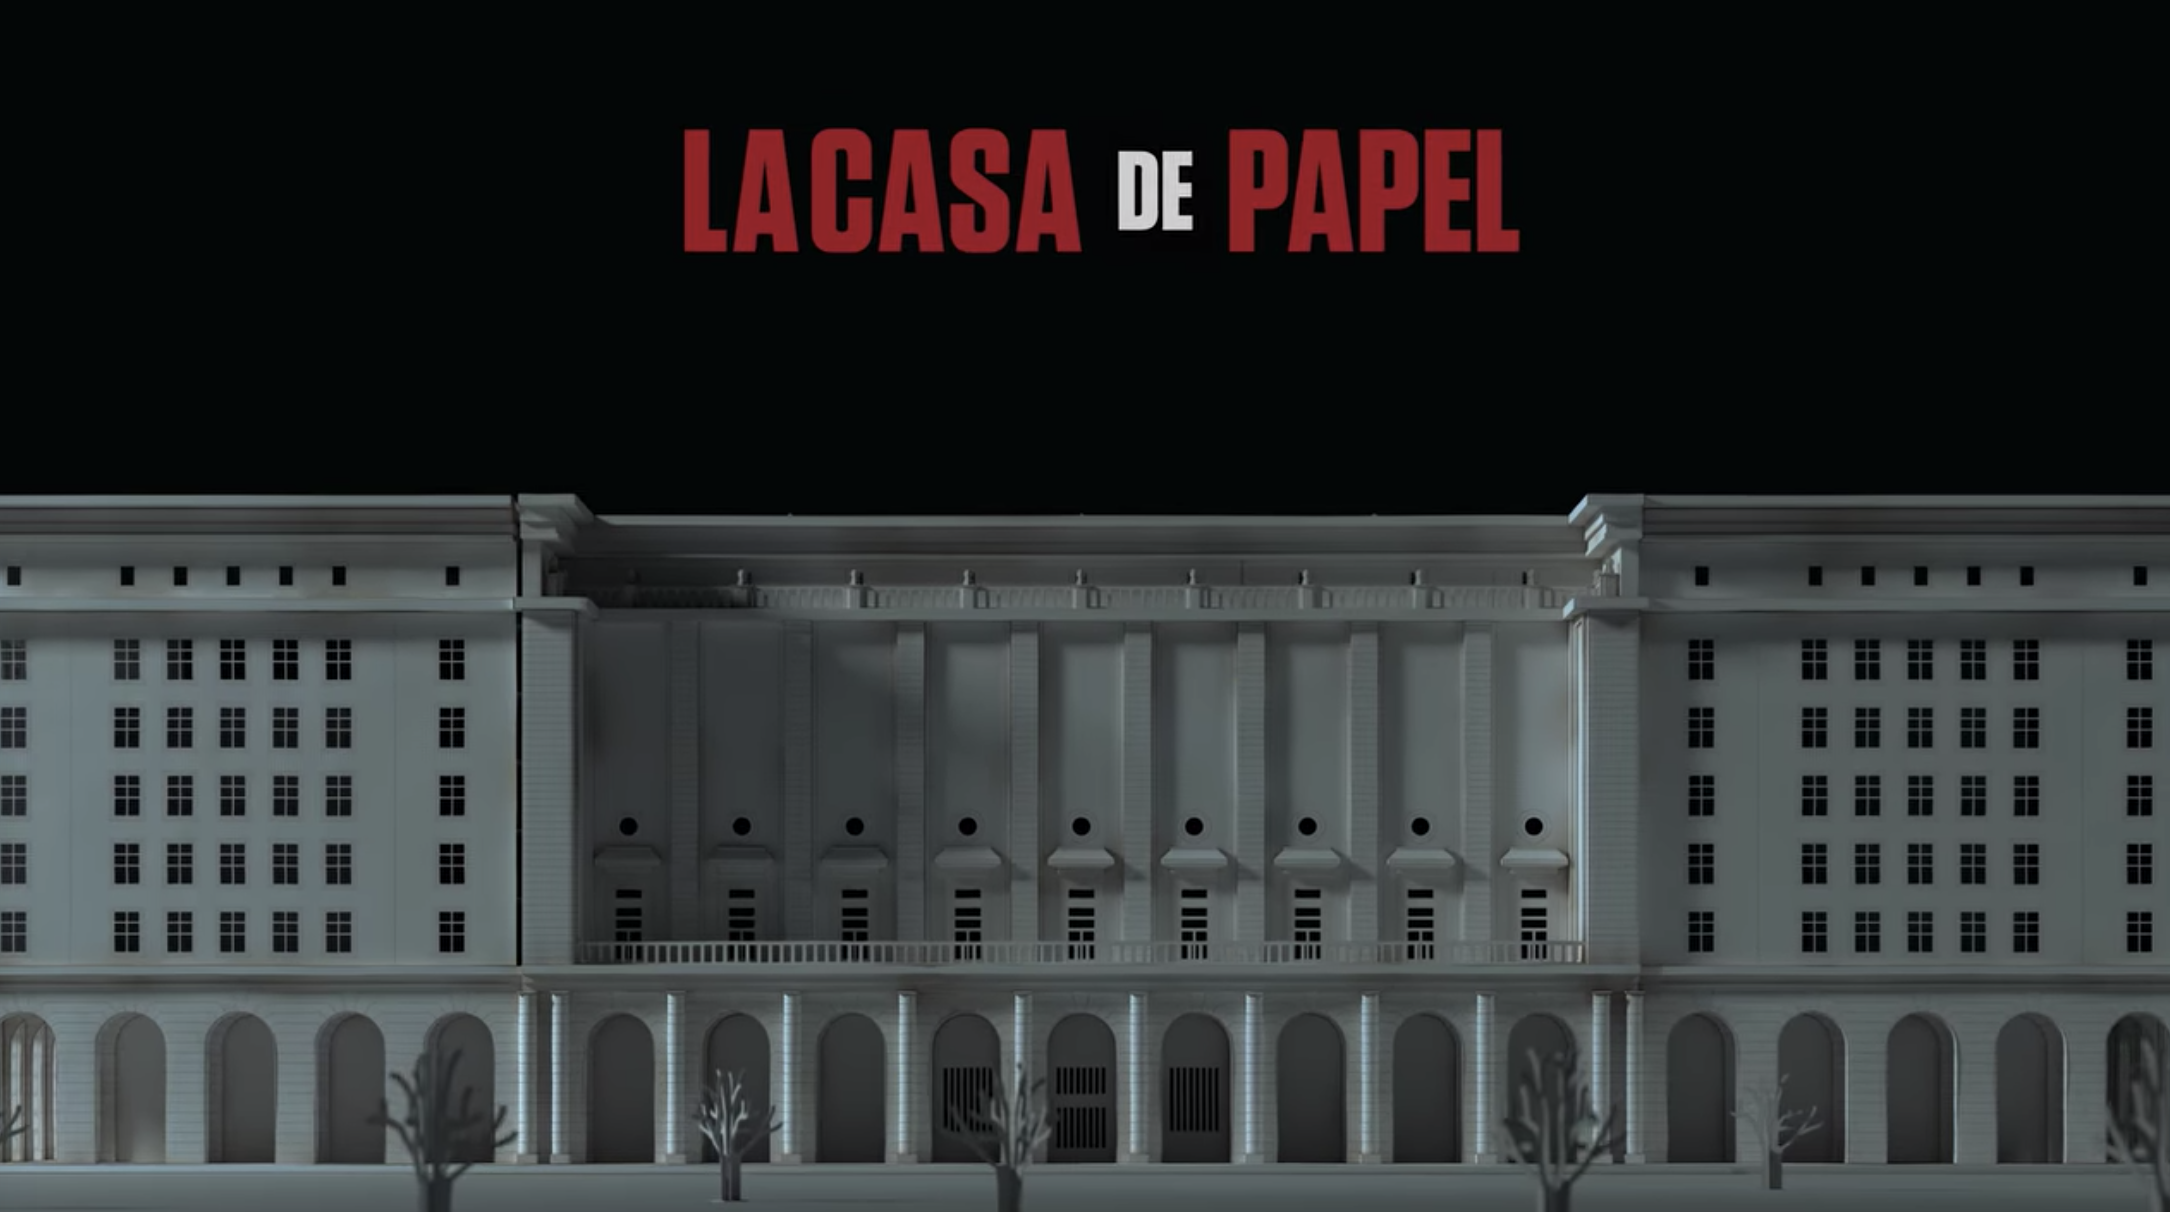 """La Casa de Papel"" title card — which is the title of the show over a white bank."